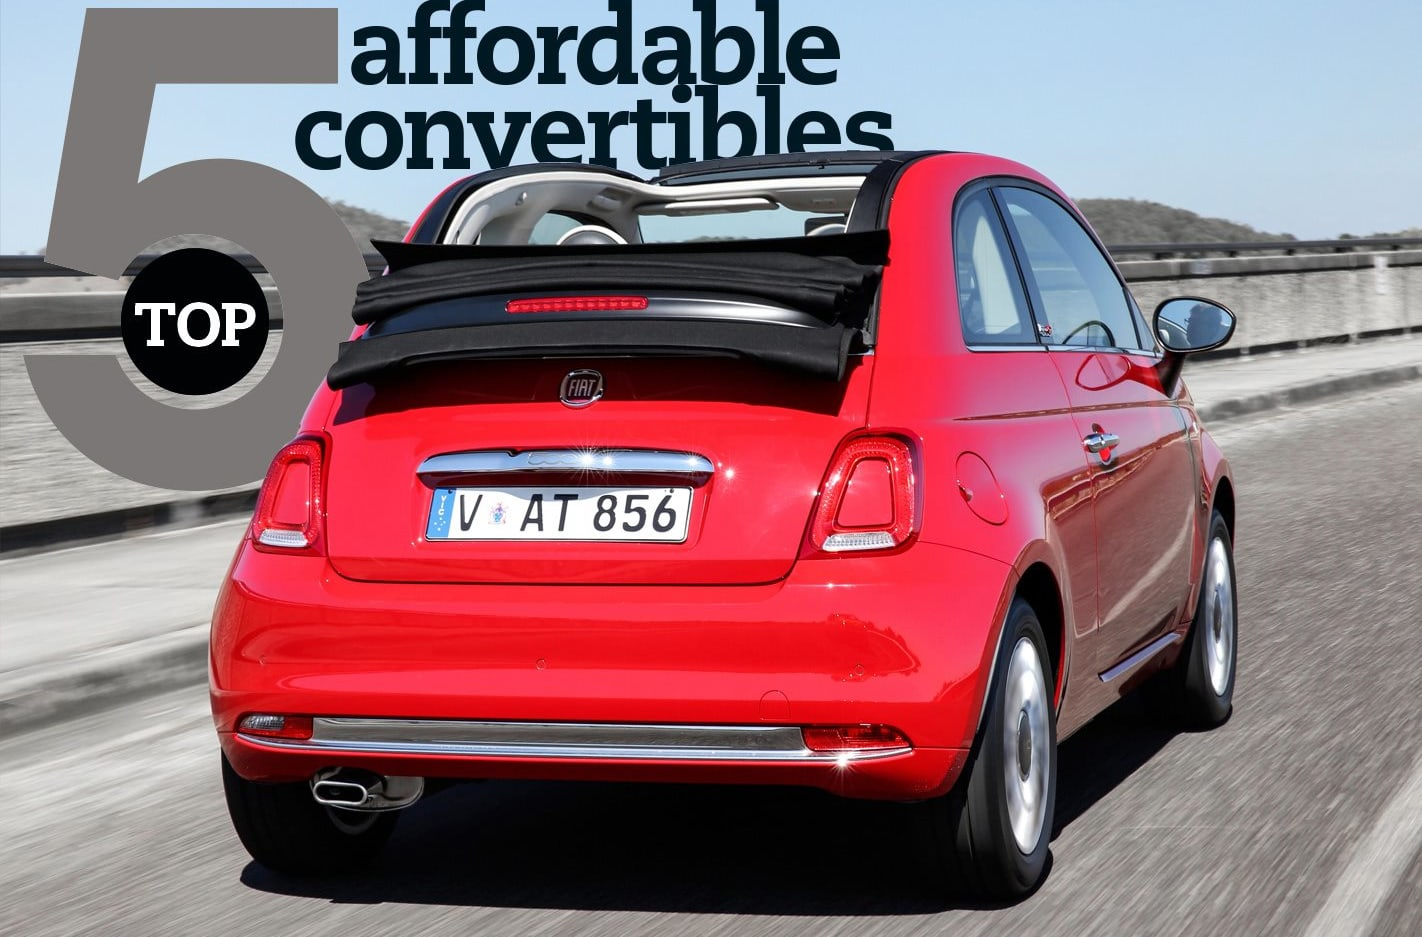 Top 5 Affordable convertibles